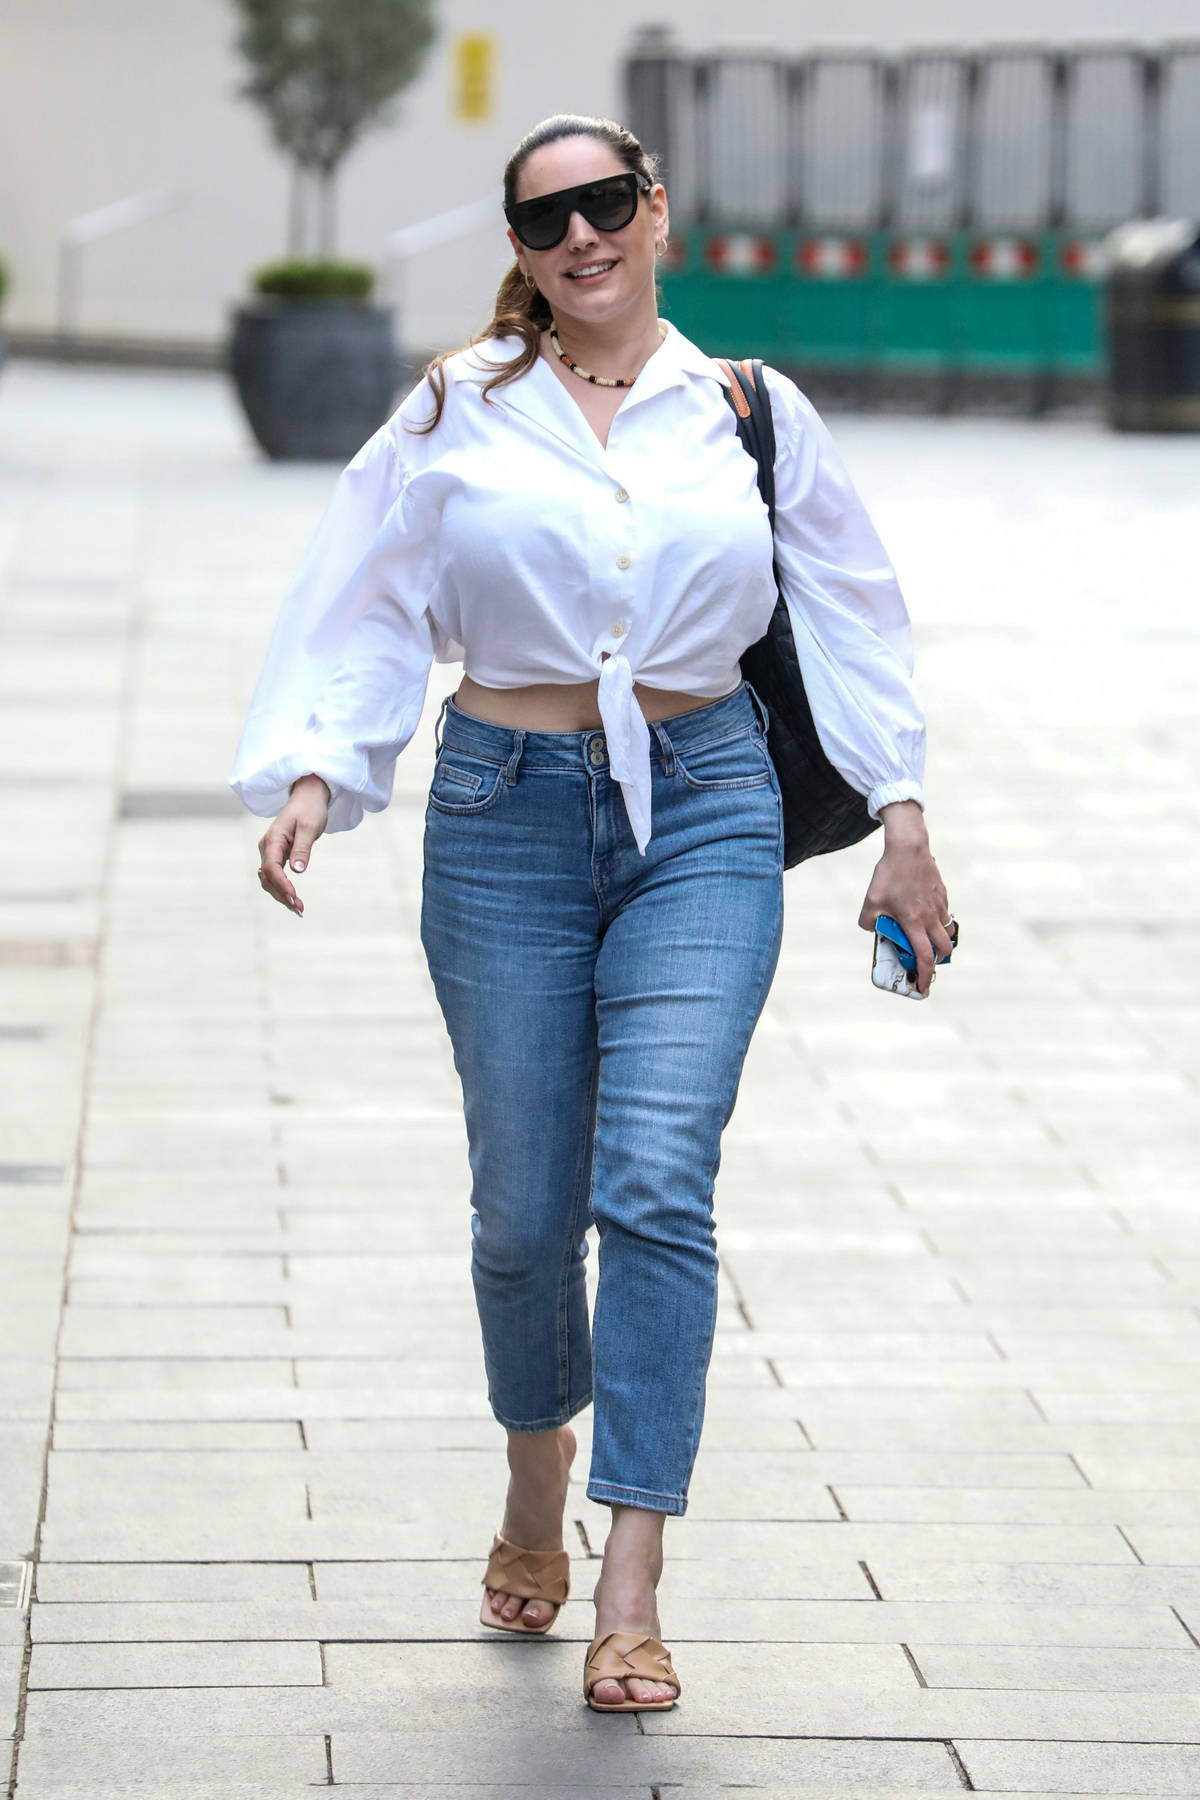 Kelly Brook flashes a smile and her midriff as she leaves her Heart FM show at the Global Radio Studios in London, UK